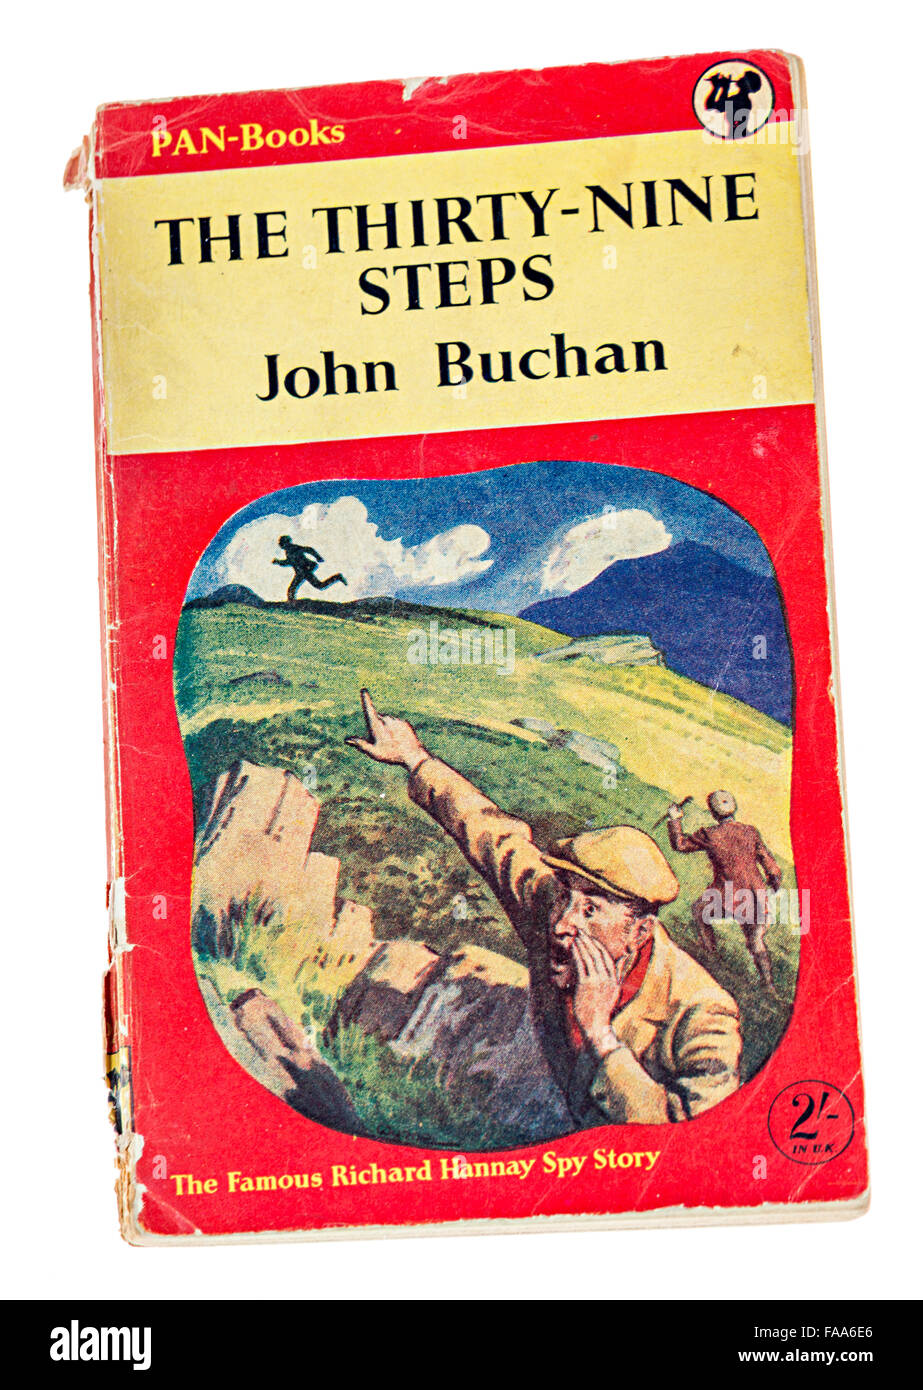 Book cover The Thirty-Nine Steps by John Buchan published by Pan - Stock Image